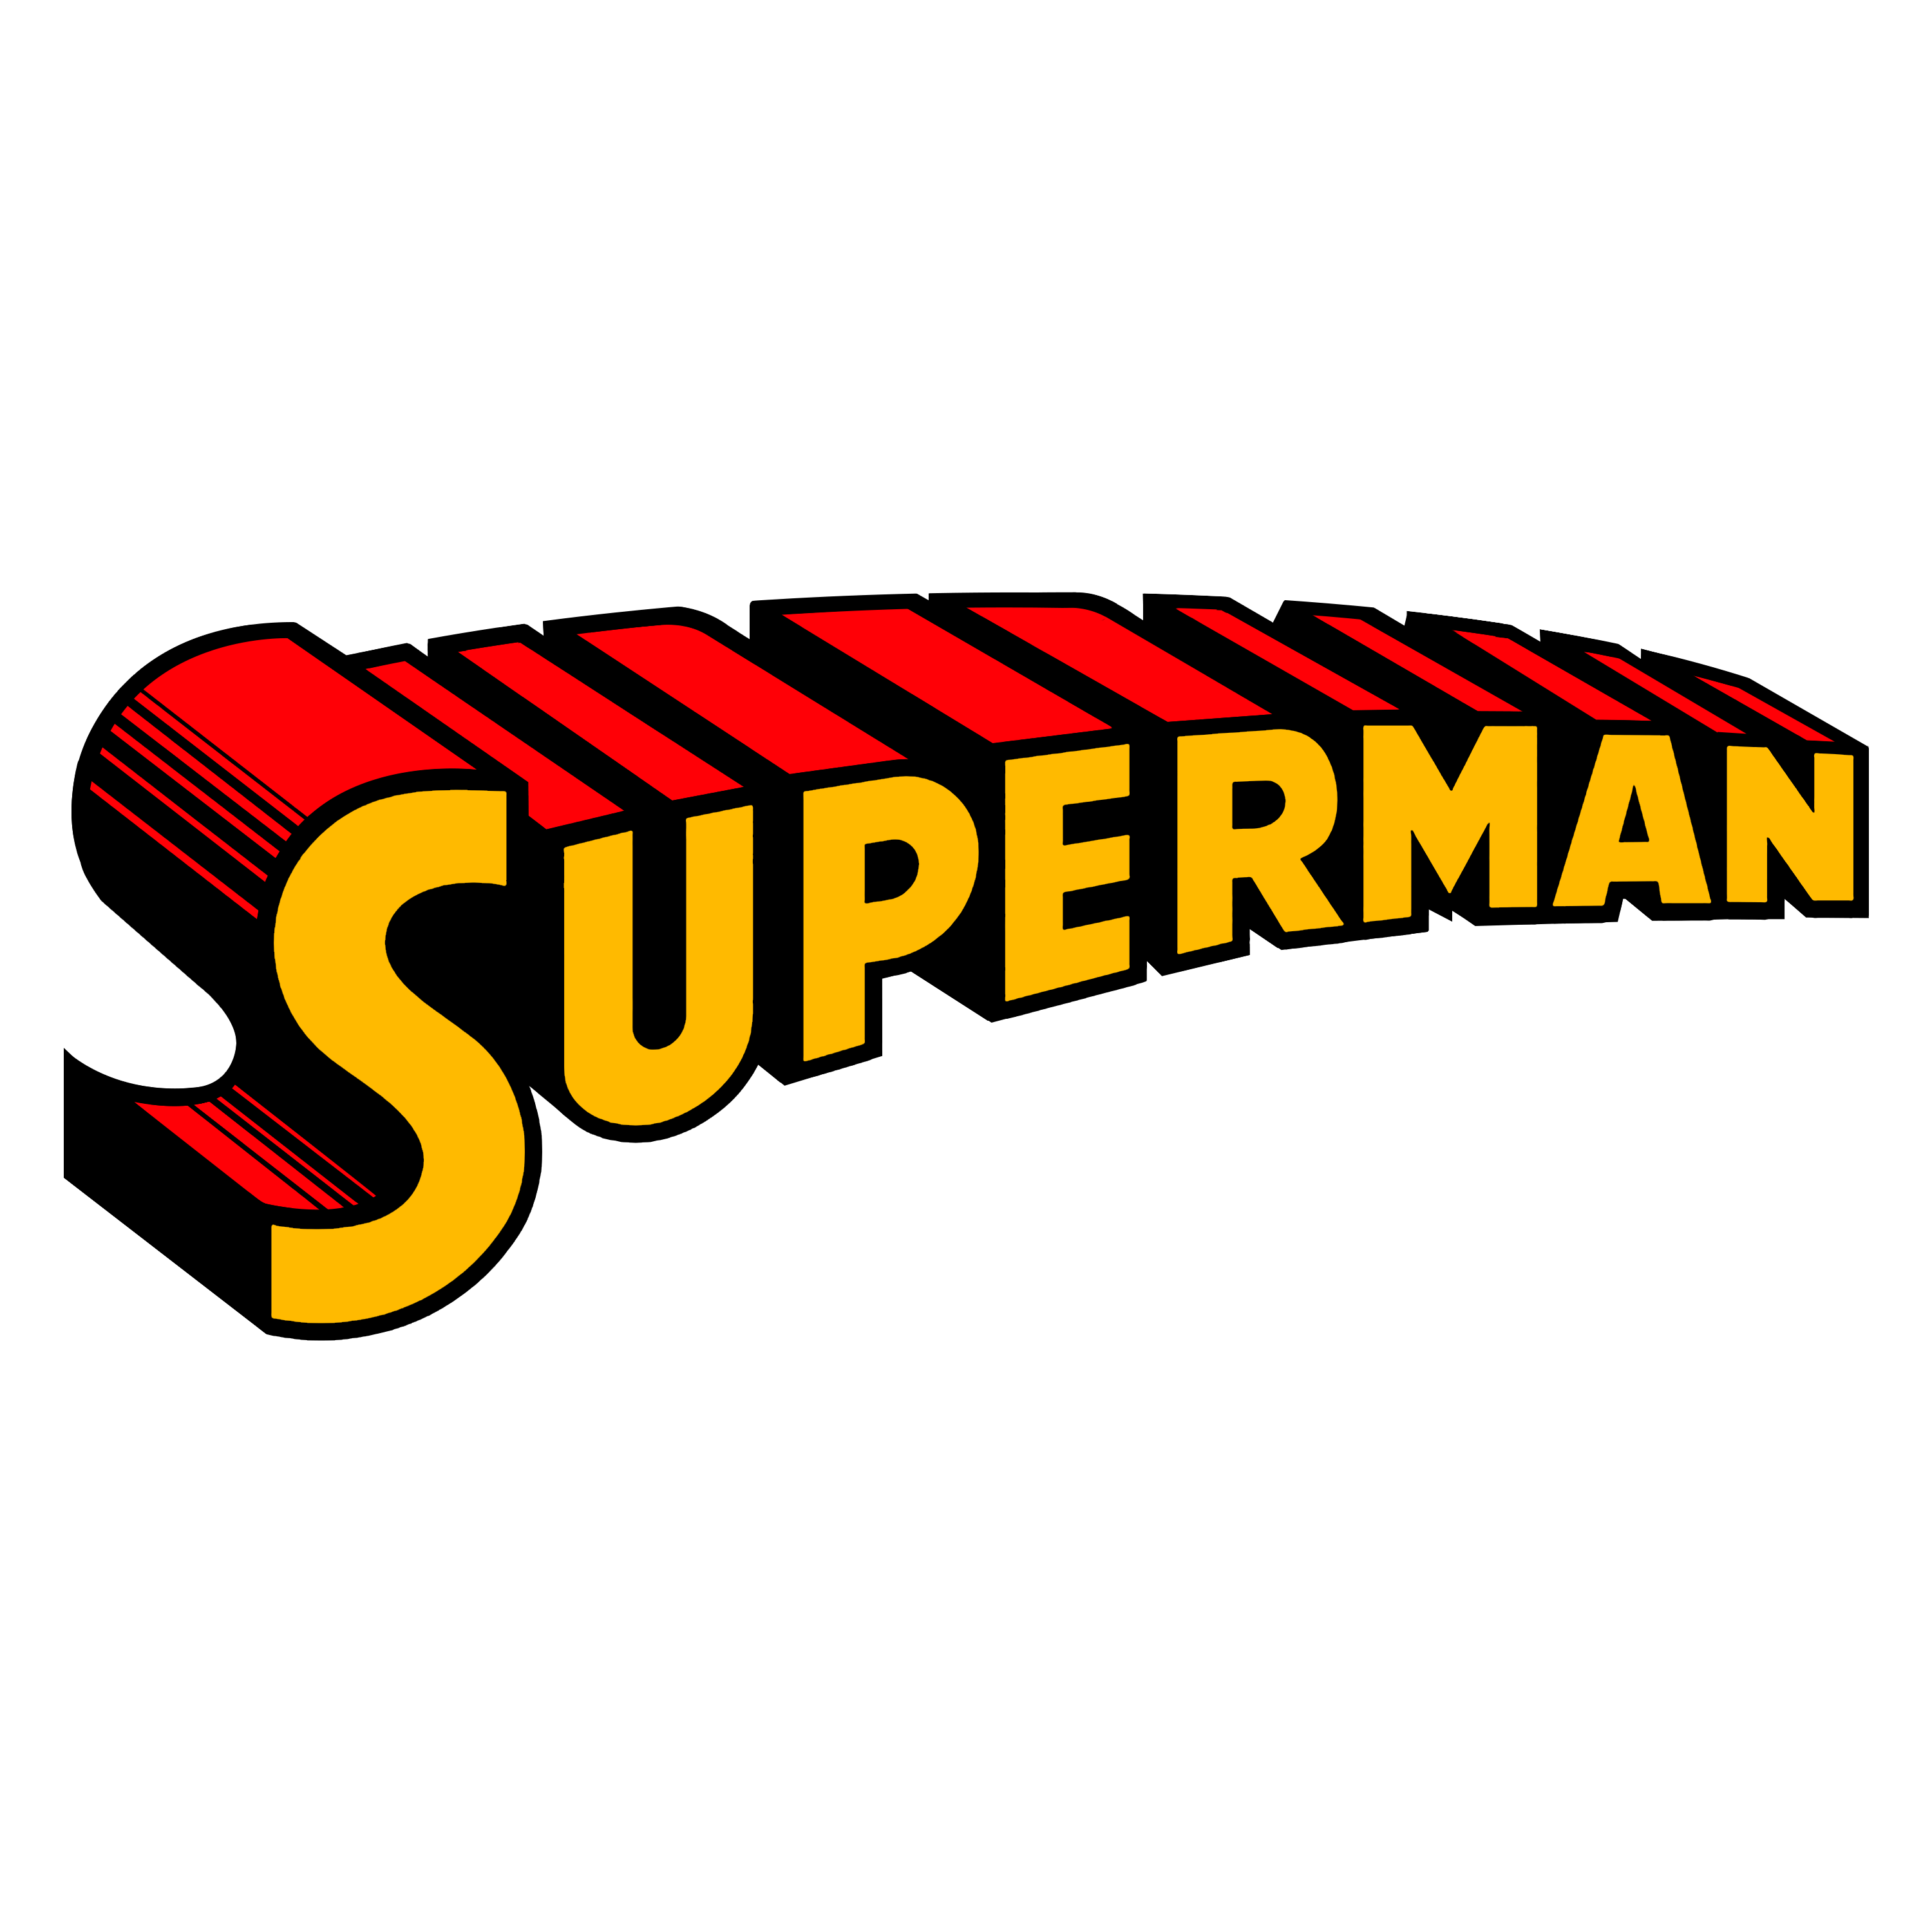 superman logo png old